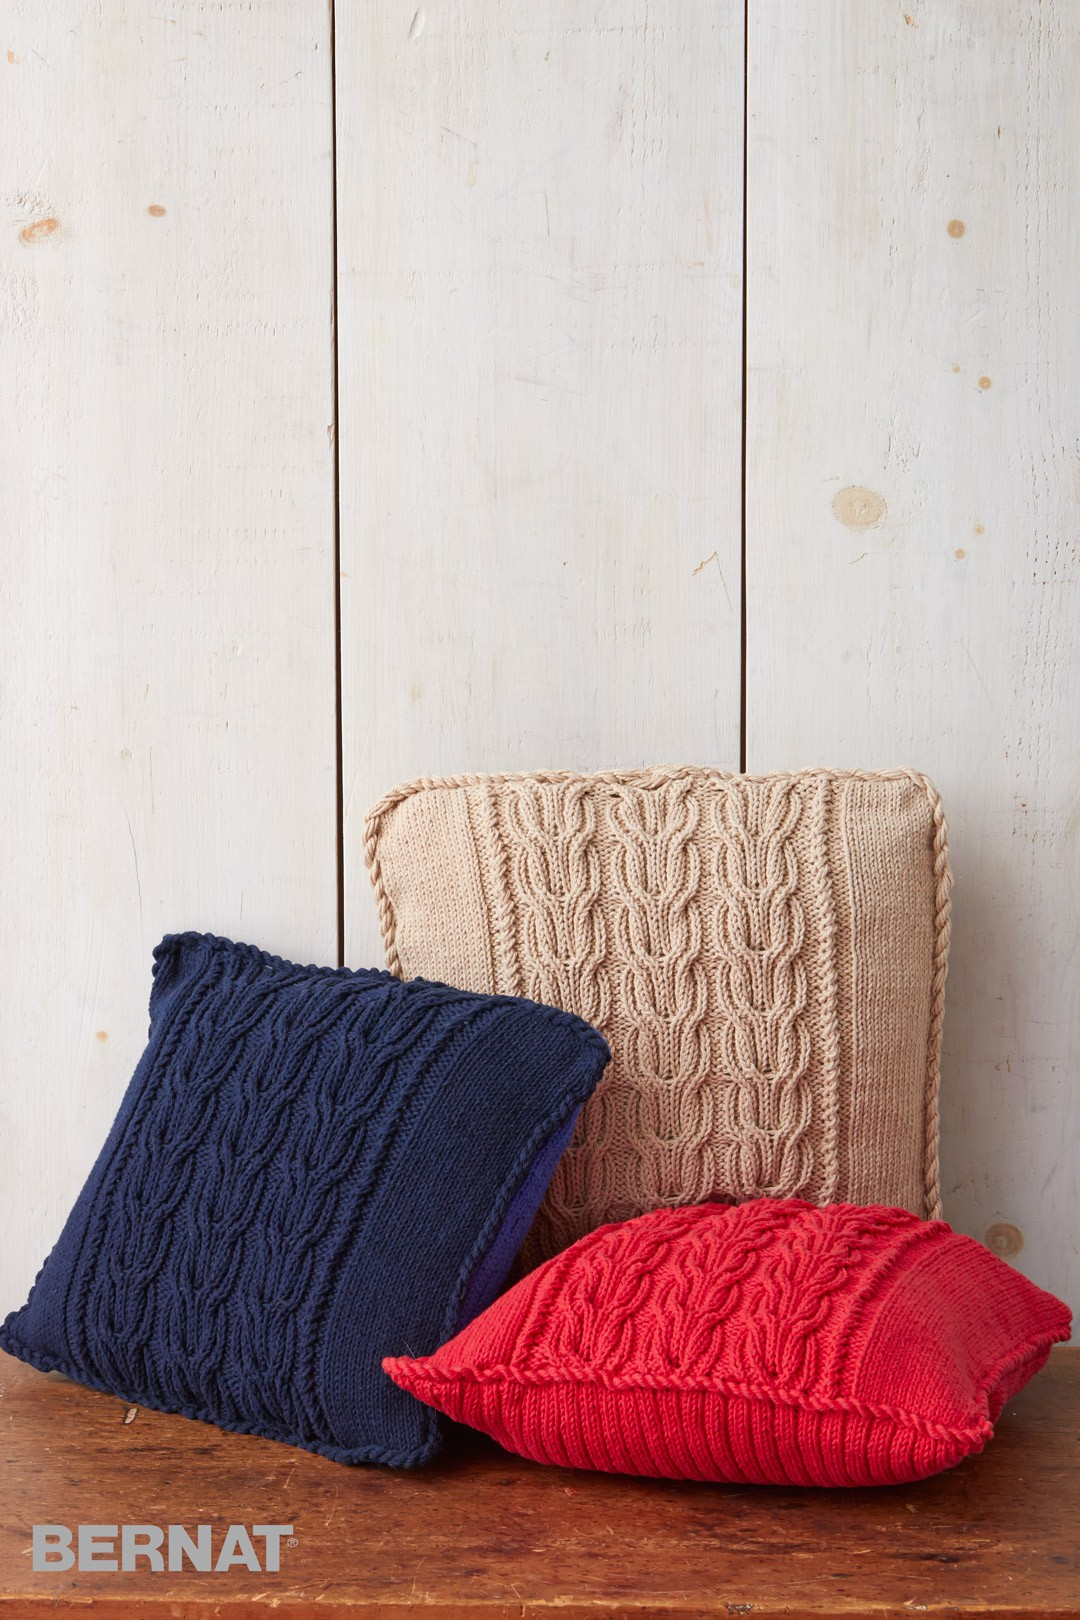 Cable Knit Pillow Pattern : Bernat Cable Knit Trio Pillows, Knit Pattern Yarnspirations